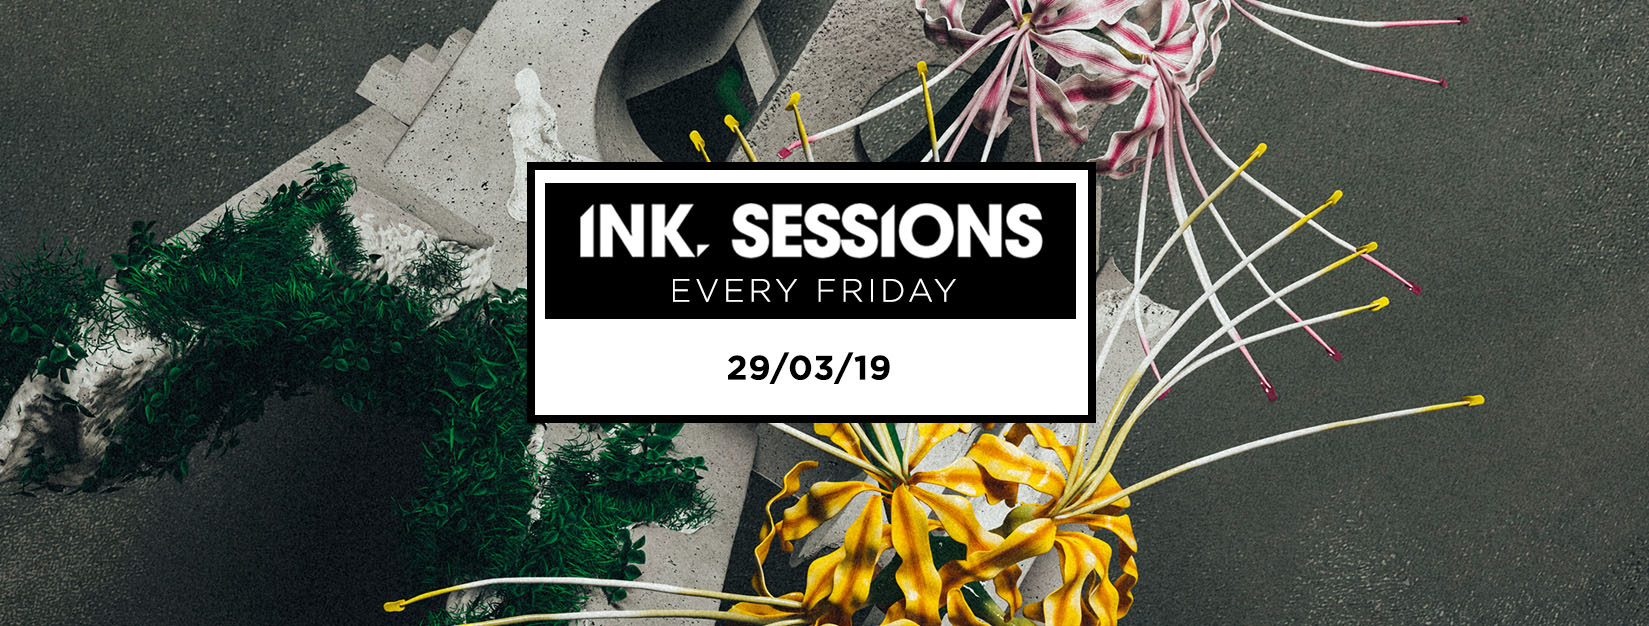 Ink Sessions 29/03/19